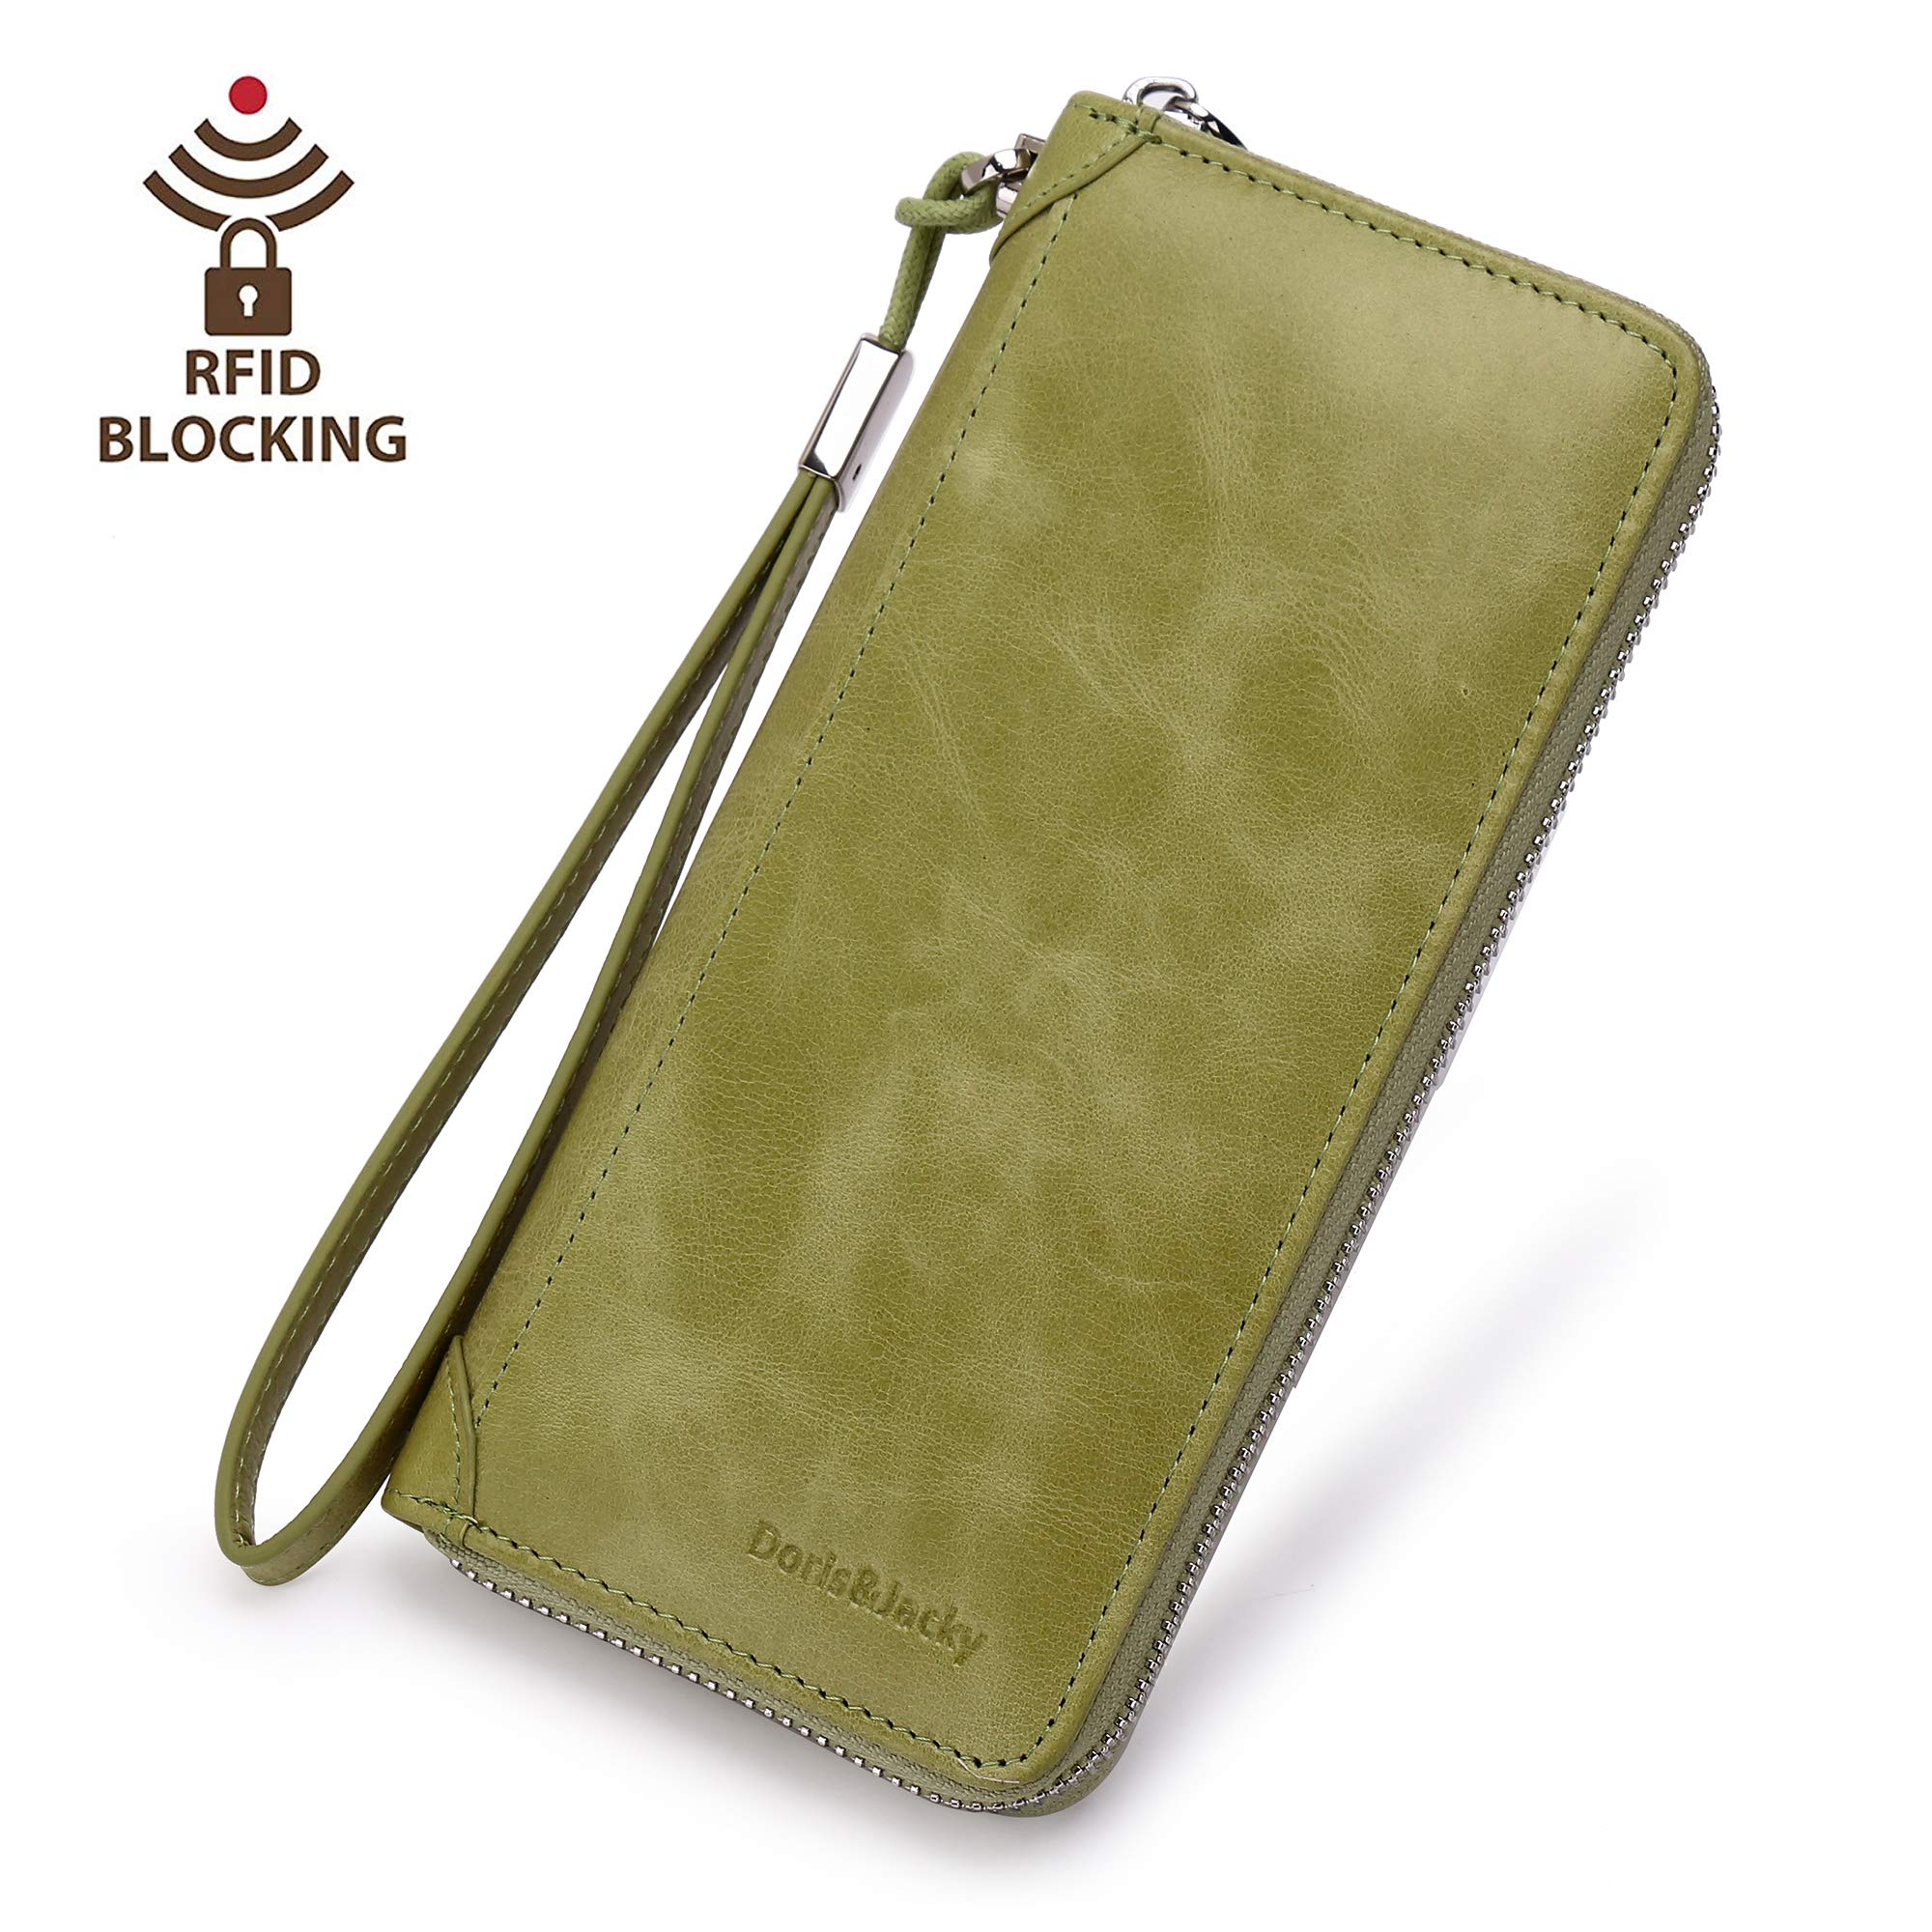 Women Leather Wallet Rfid Blocking Large Capacity Zipper Around Travel Wristlet Bags (Palm Green)